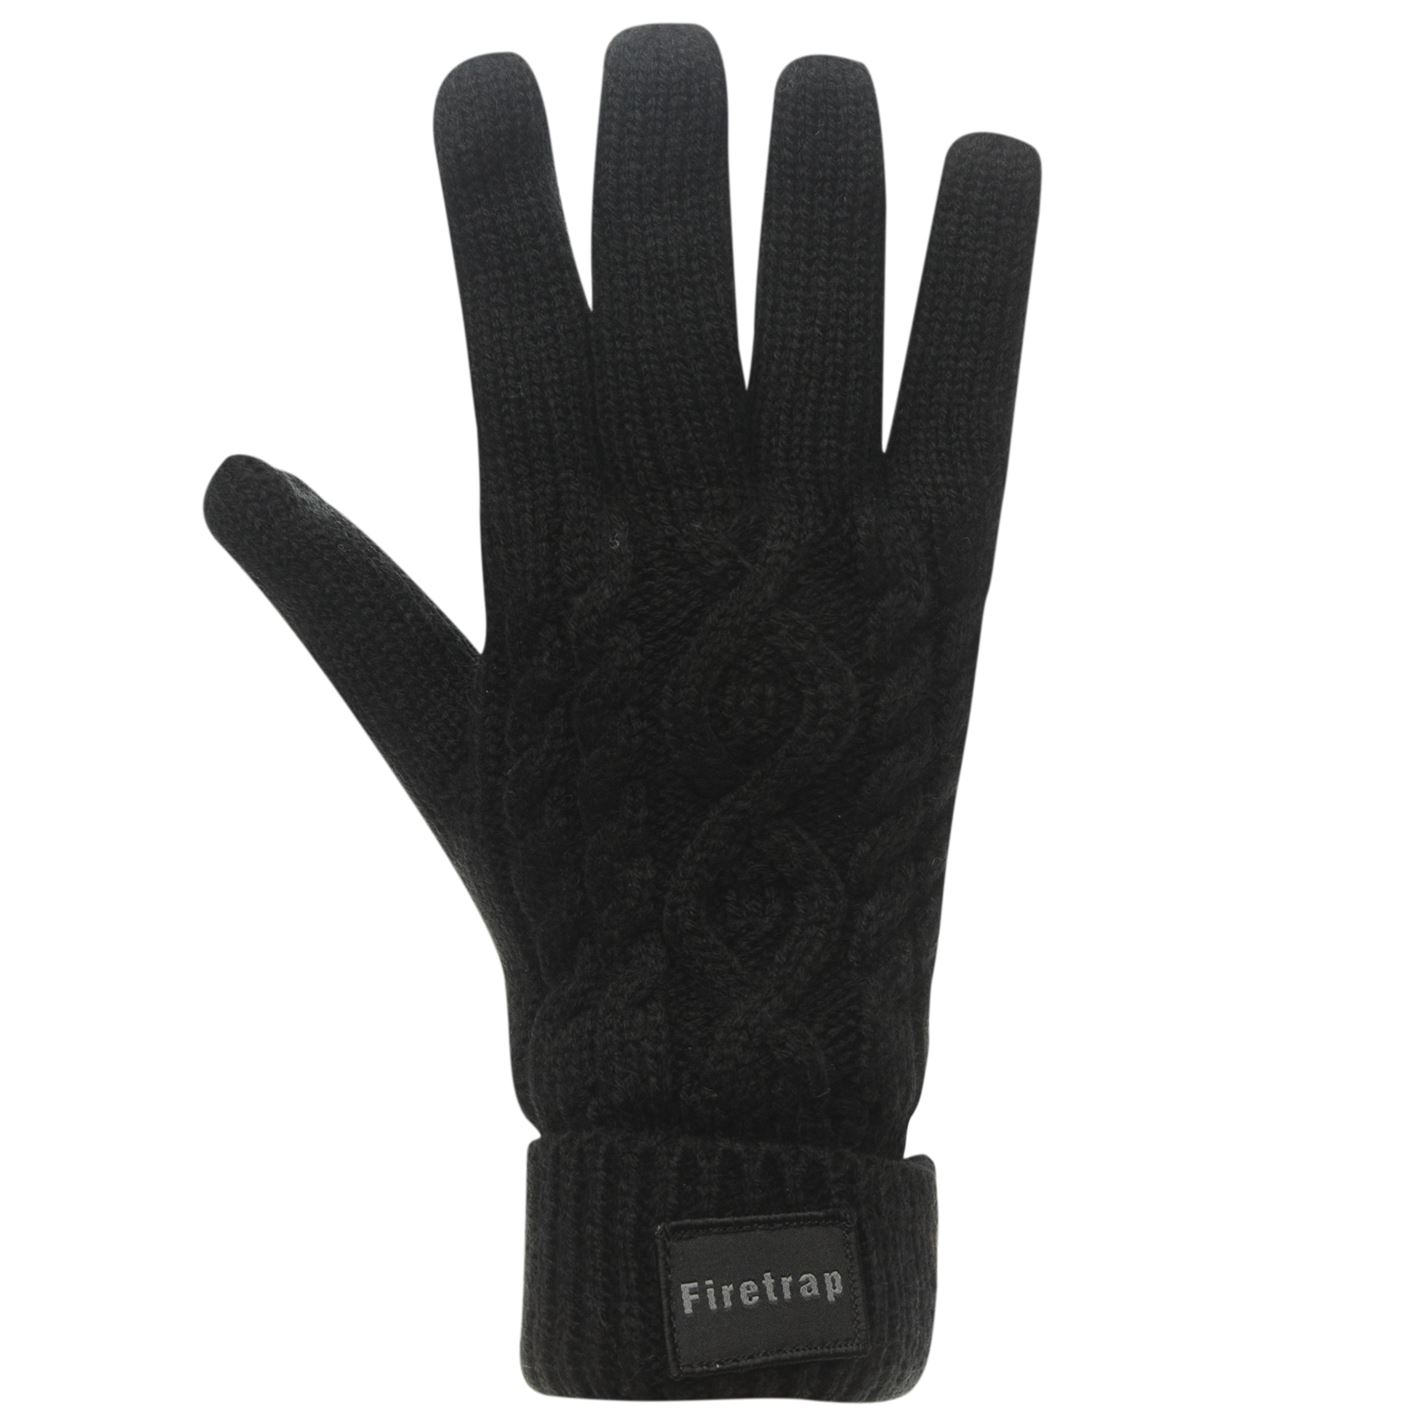 Mens-Firetrap-Cable-Knit-Gloves-Knitted-Winter-New thumbnail 7